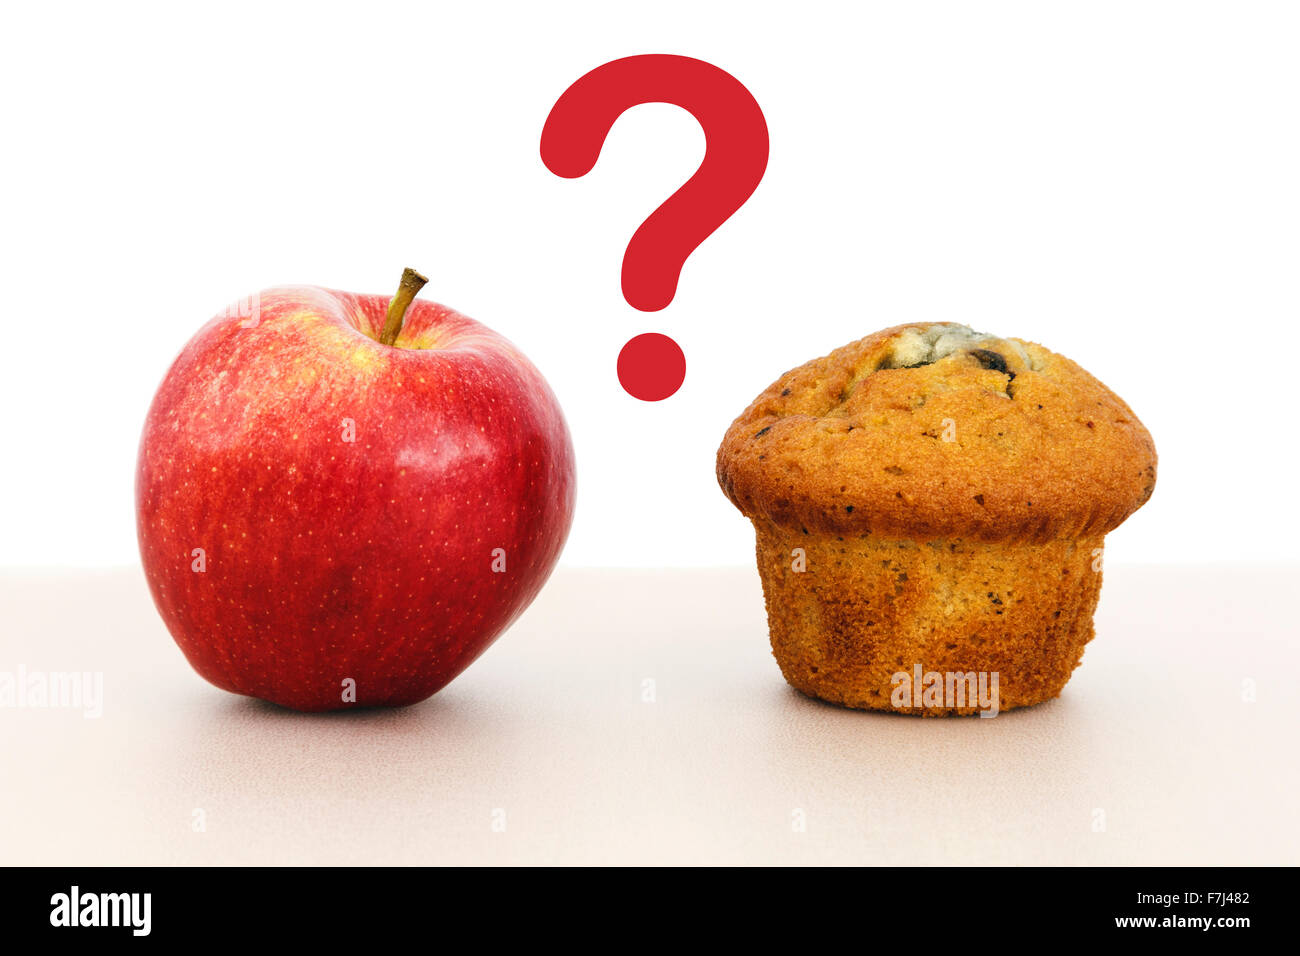 Rosy red apple and a muffin cake on a tabletop with a question mark between to illustrate healthy and unhealthy Stock Photo